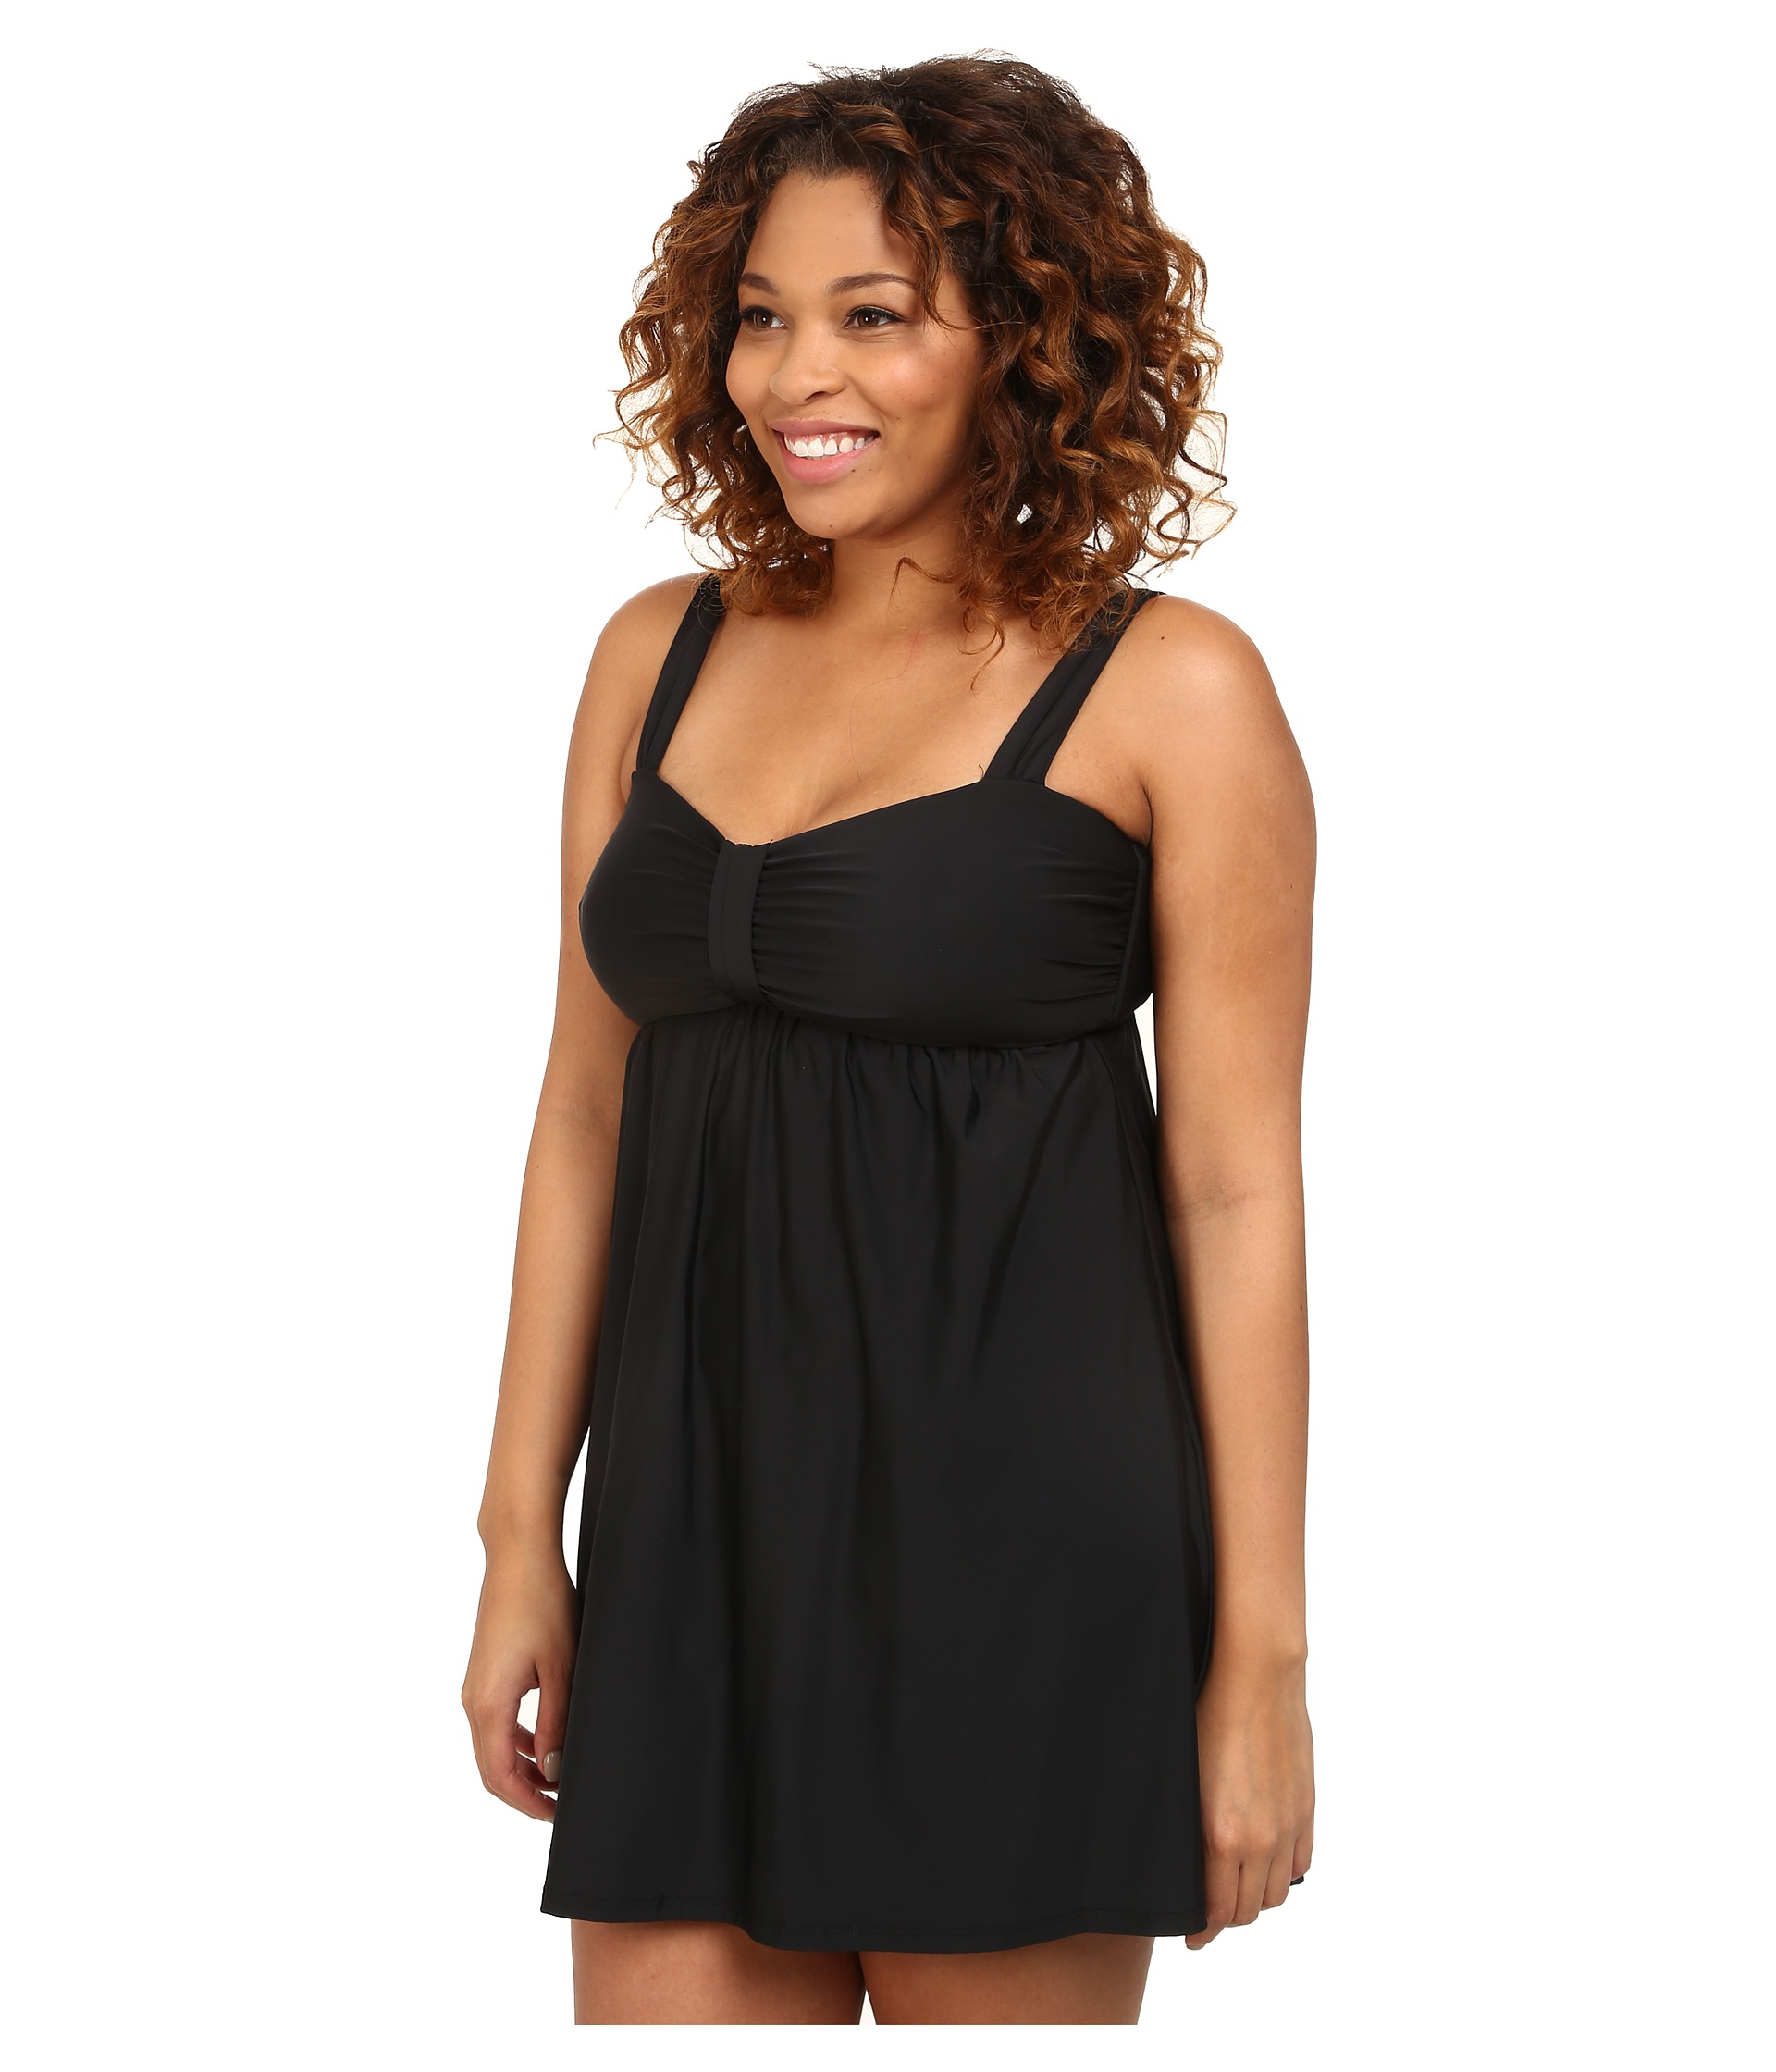 Athena Plus Size Finesse Underwire Swim Dress One Piece In